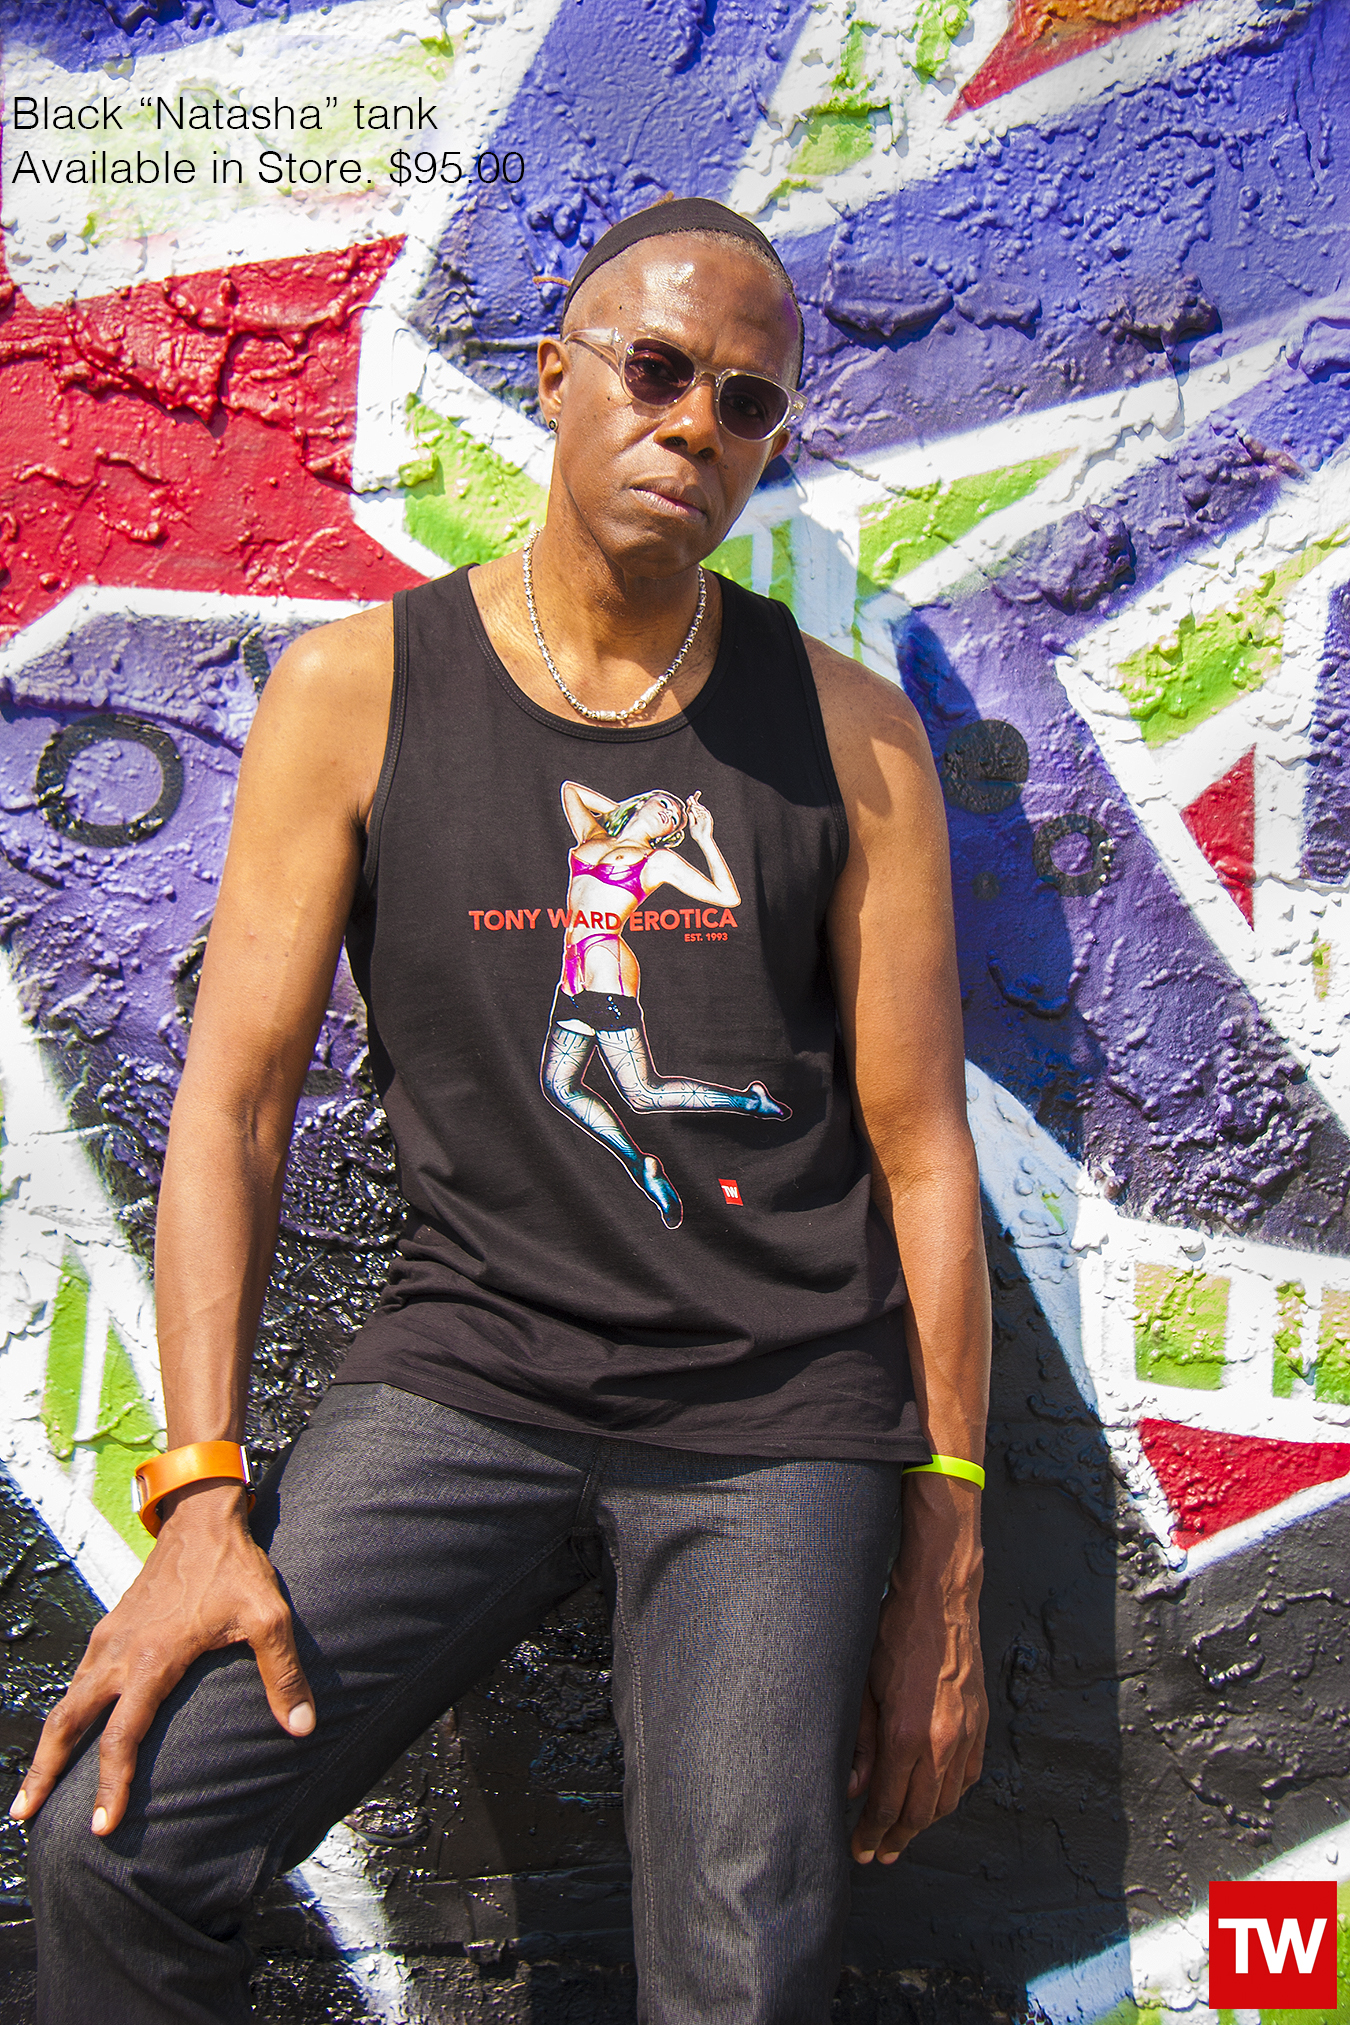 Tony_Ward_Studio_e_commerce_store_t-shirts_black_Natasha_tank_sale_model_Mikel_Elam